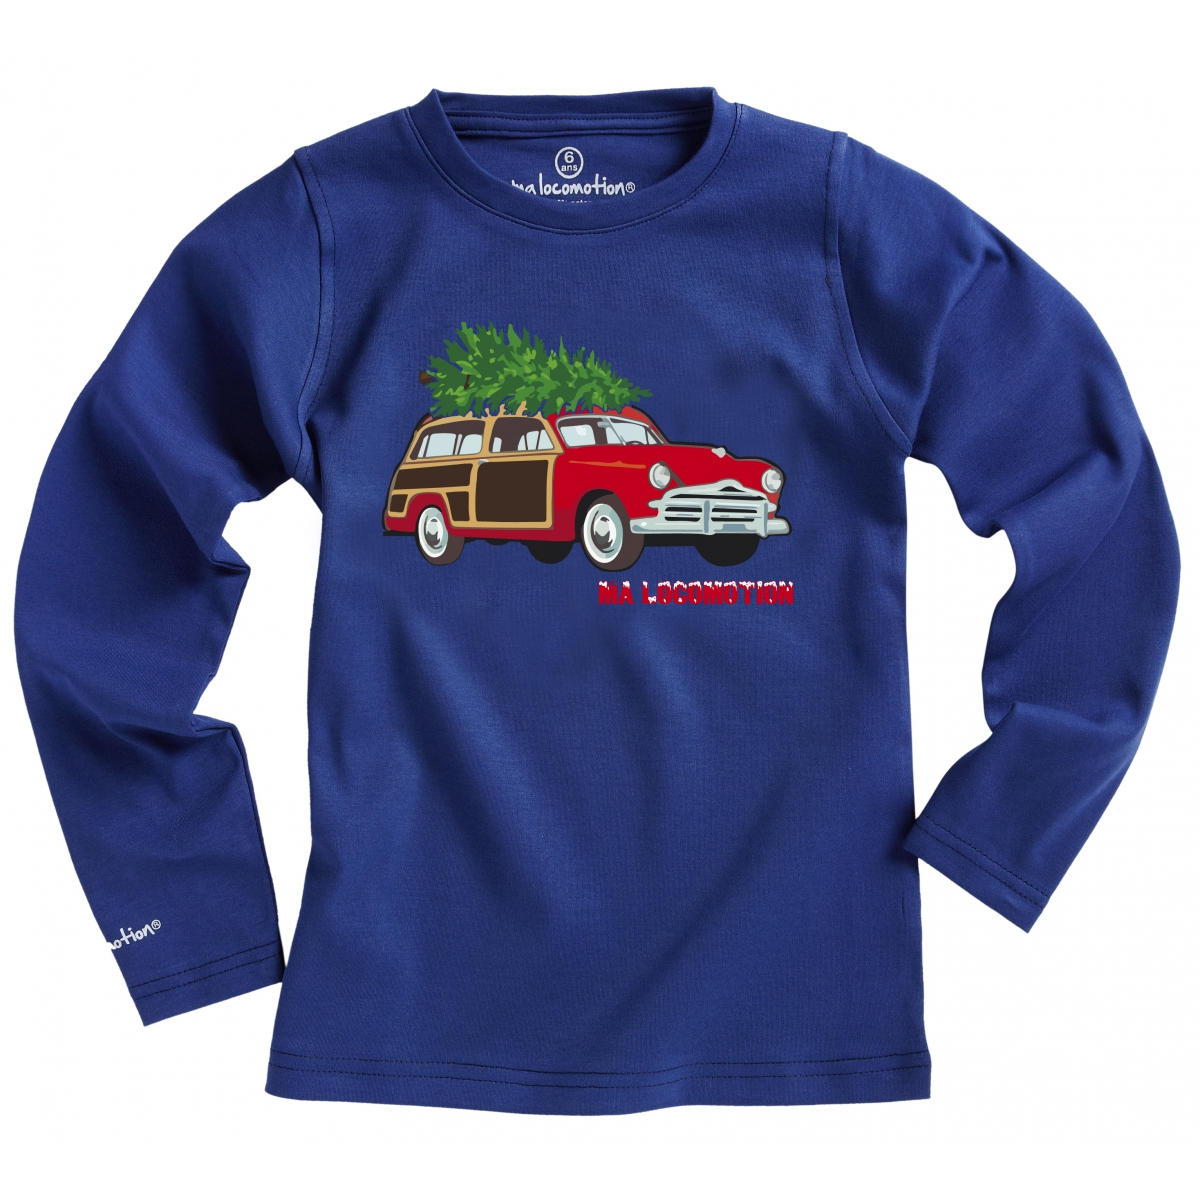 Vintage Christmas car - cobalt blue